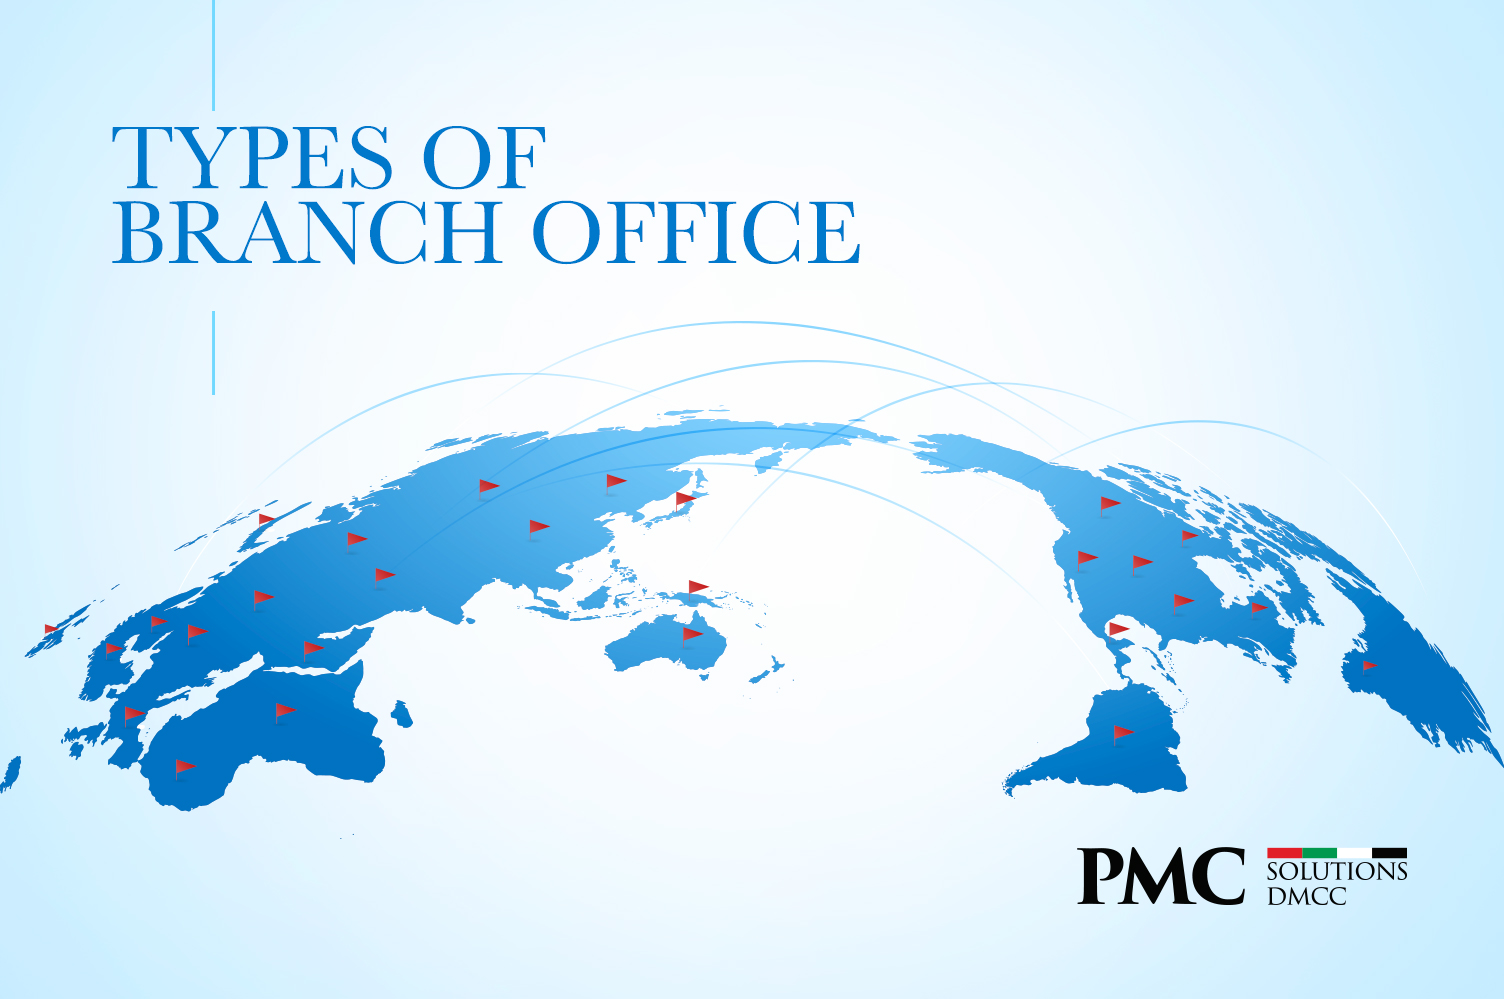 Types of Branch Office in the UAE